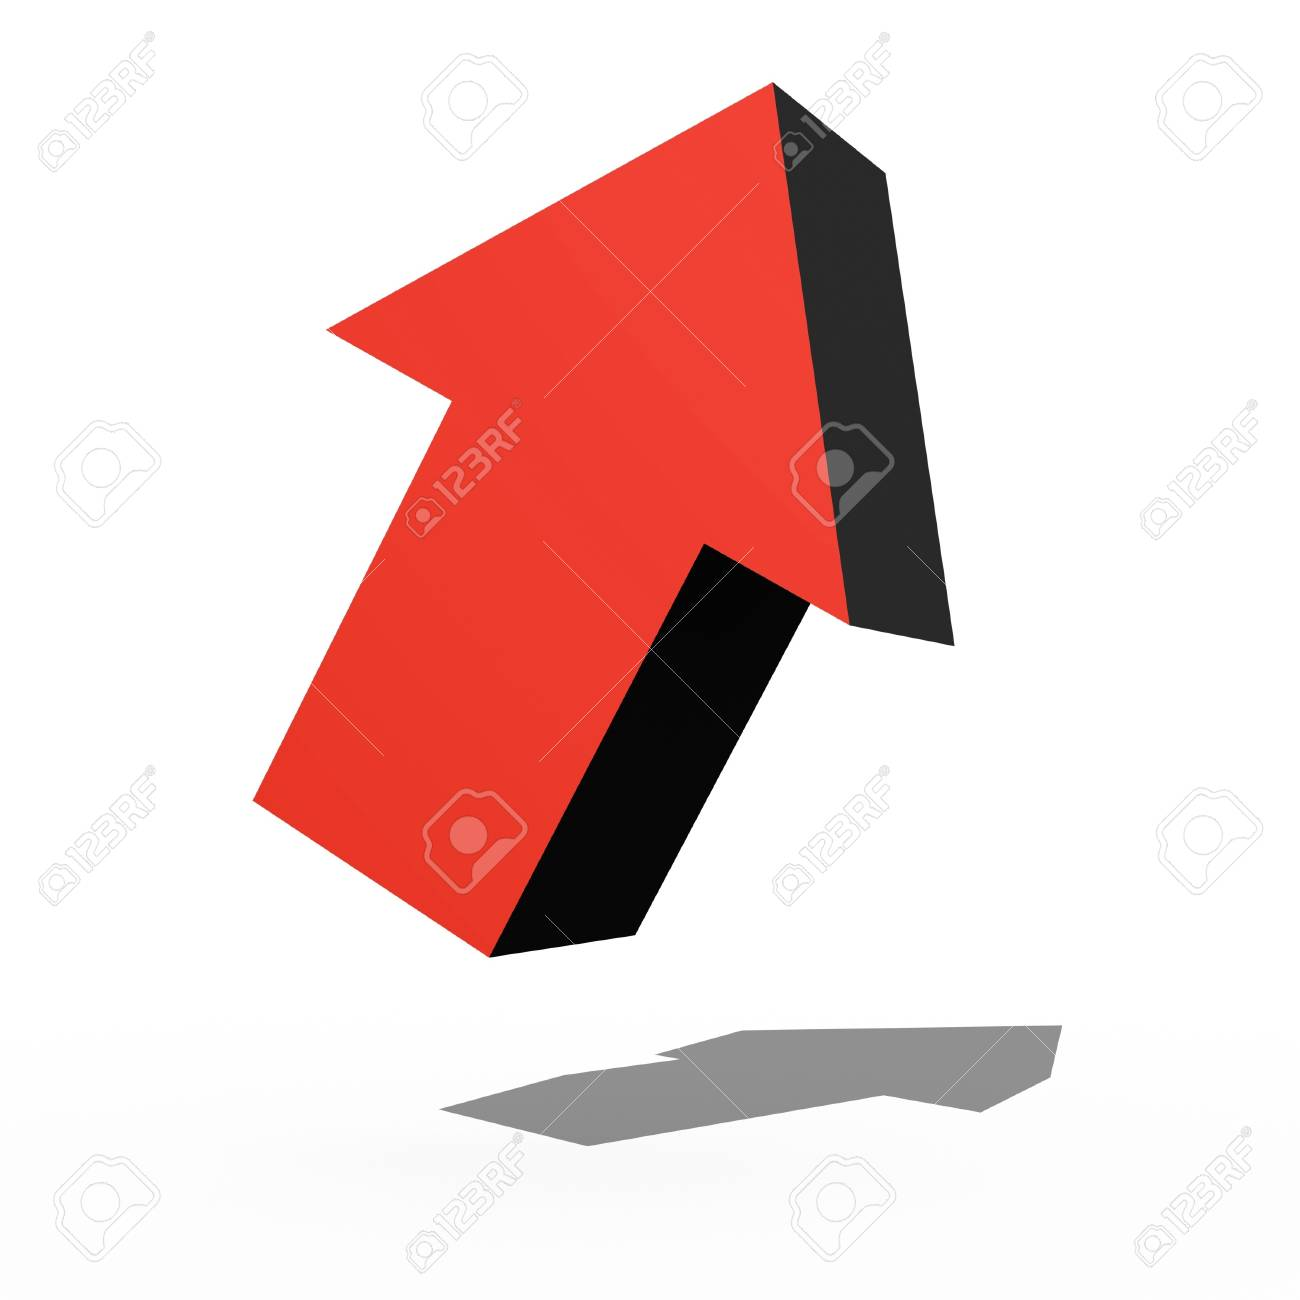 A 3d arrow sign isolated against a white background Stock Photo - 16067694